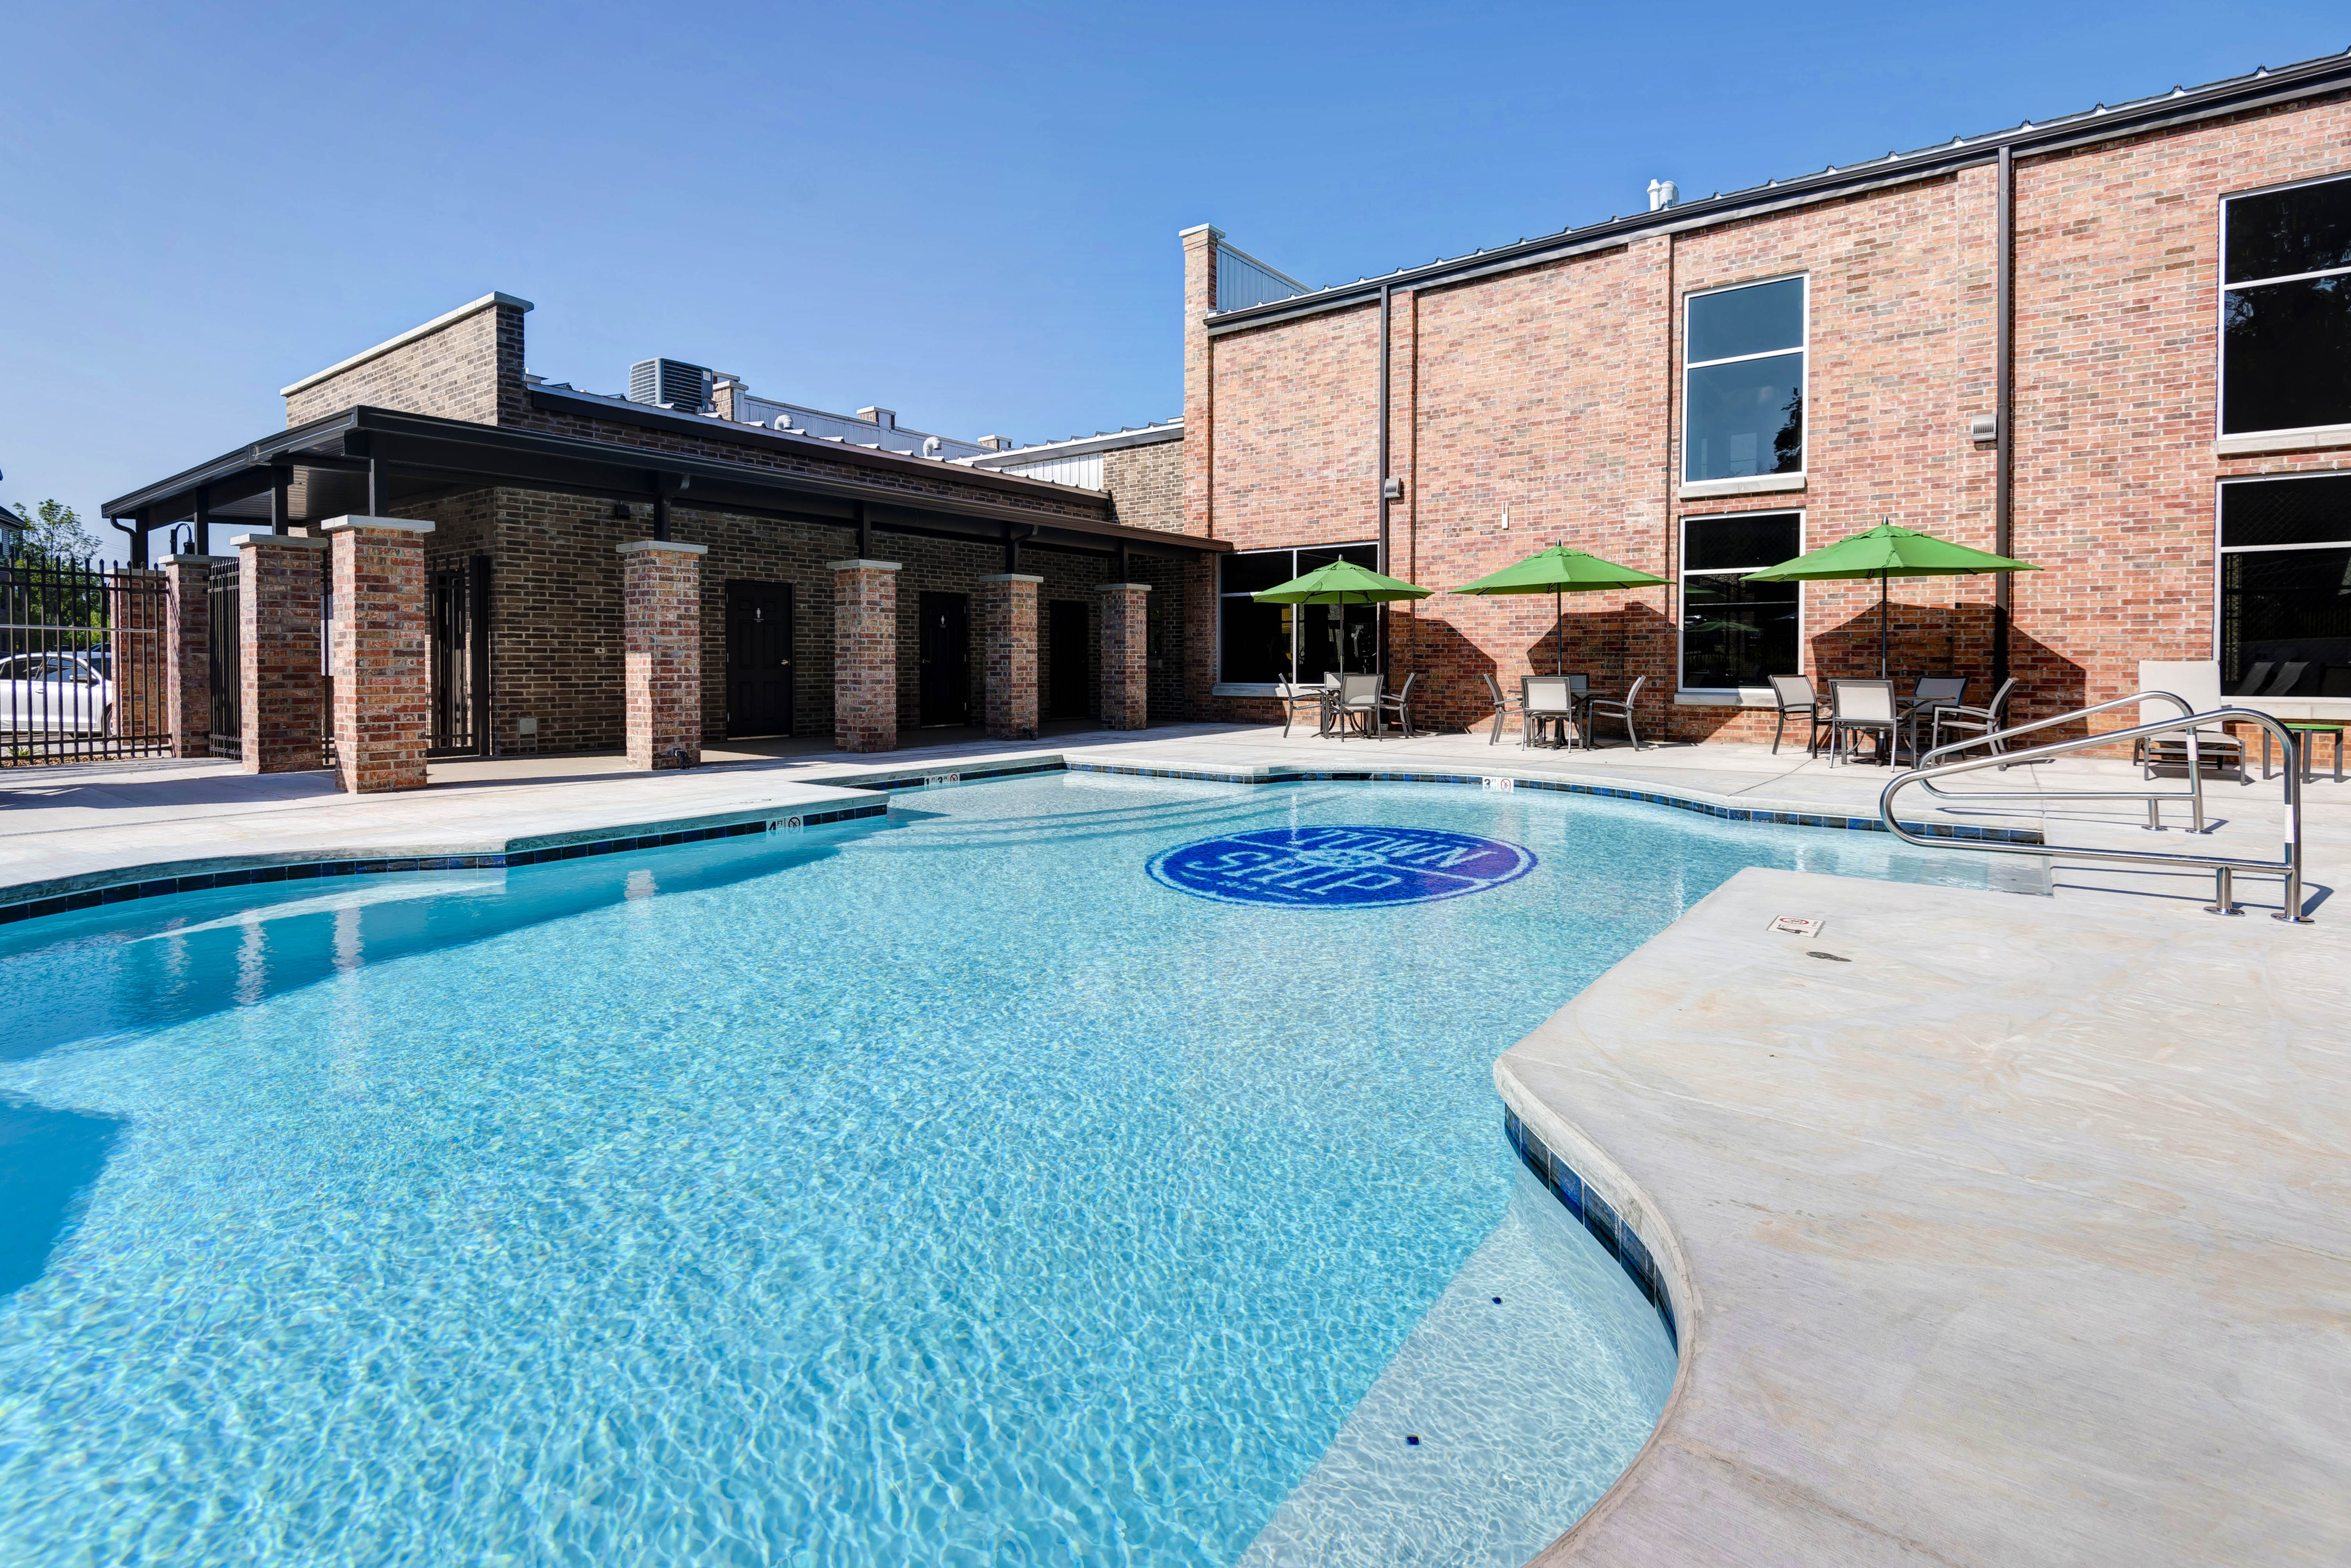 Township 28 Apartments pool and sun deck